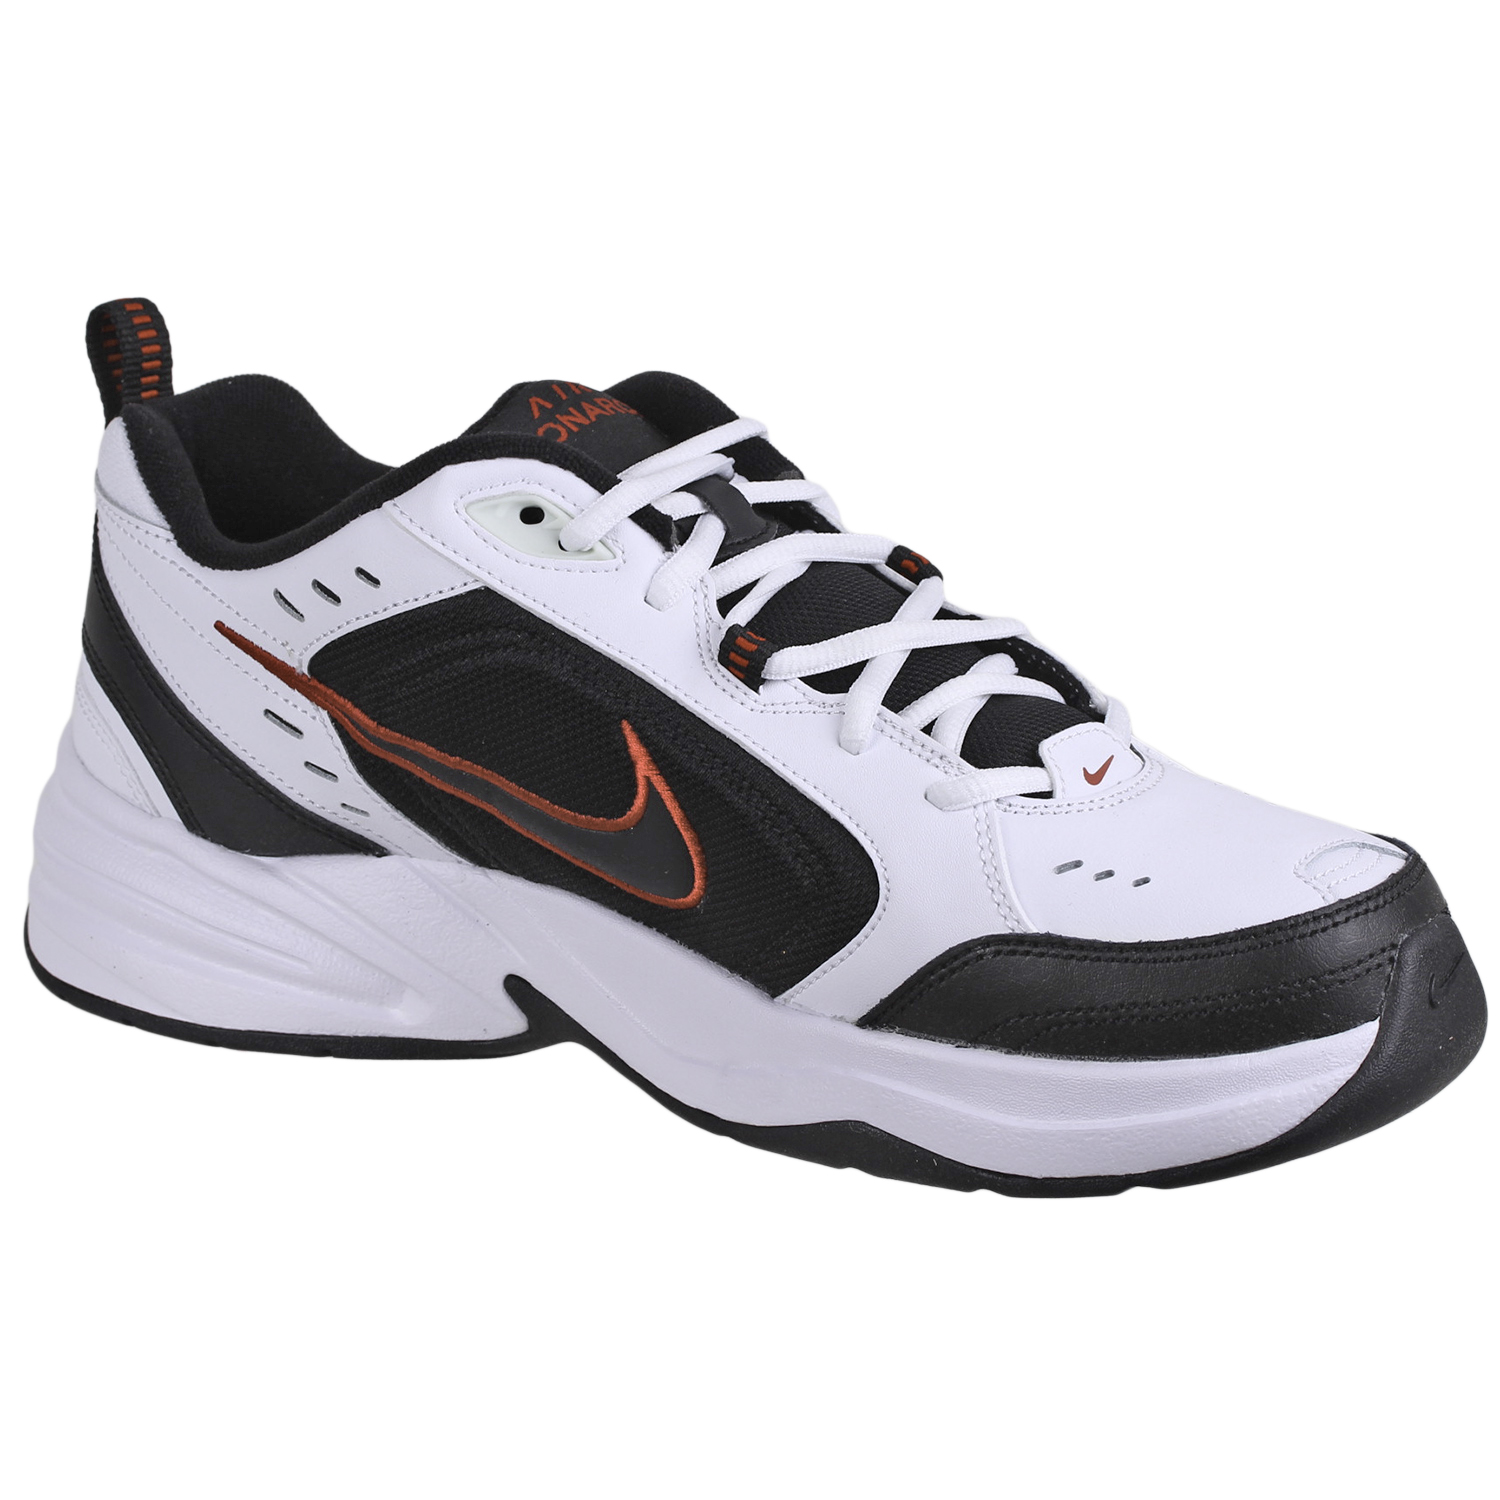 new arrival eafe0 13ce5 Nike Men s Air Monarch IV Trainer Shoes 415445 White Black sz10